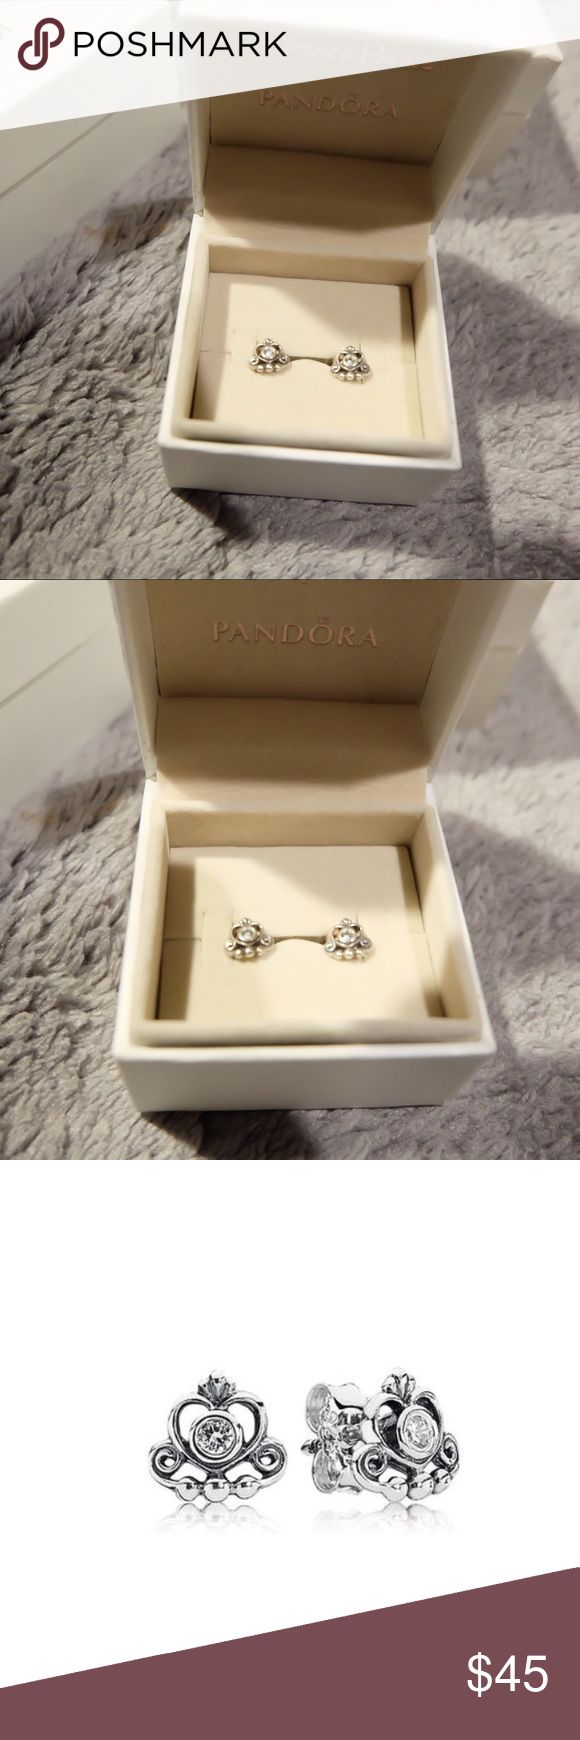 SALE! ✨ Pandora princess earrings 💜 Pandora princess earrings. Pretty, silver in color. Used but in really good condition. 💜 Pandora Jewelry Earrings